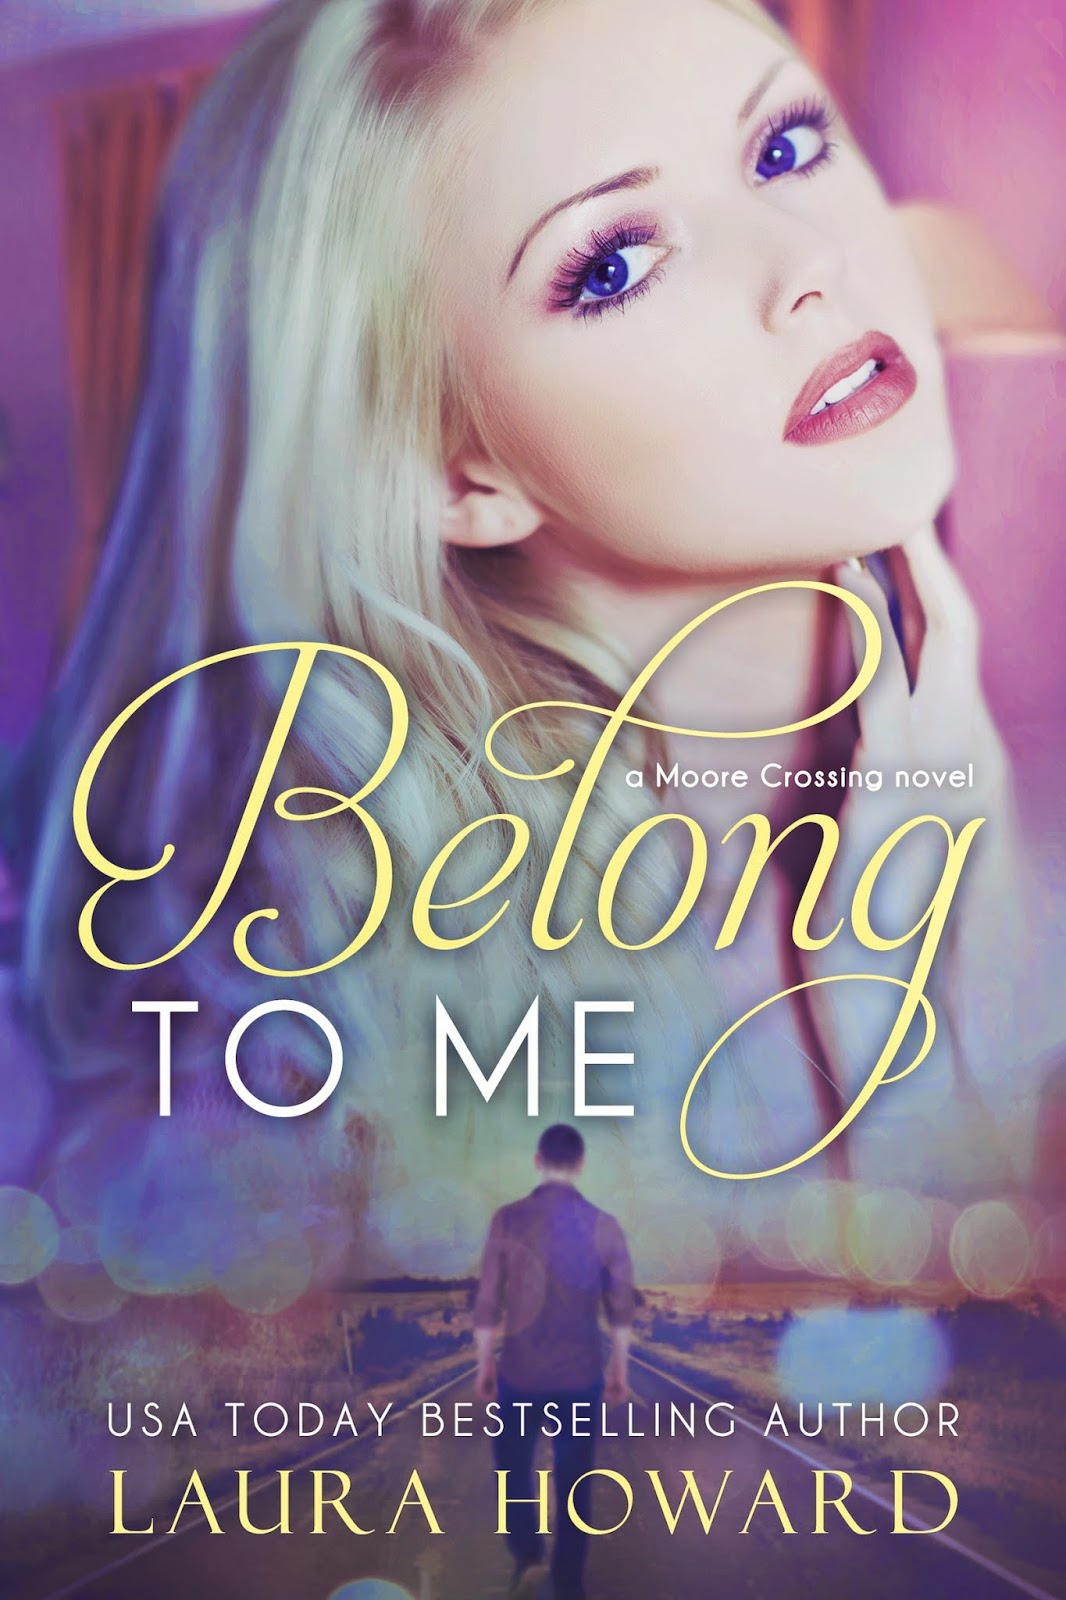 Congratulations To Laura Howard On The Upcoming Release Of Another Lovely  Novel! Here Is The Cover For Belong To Me